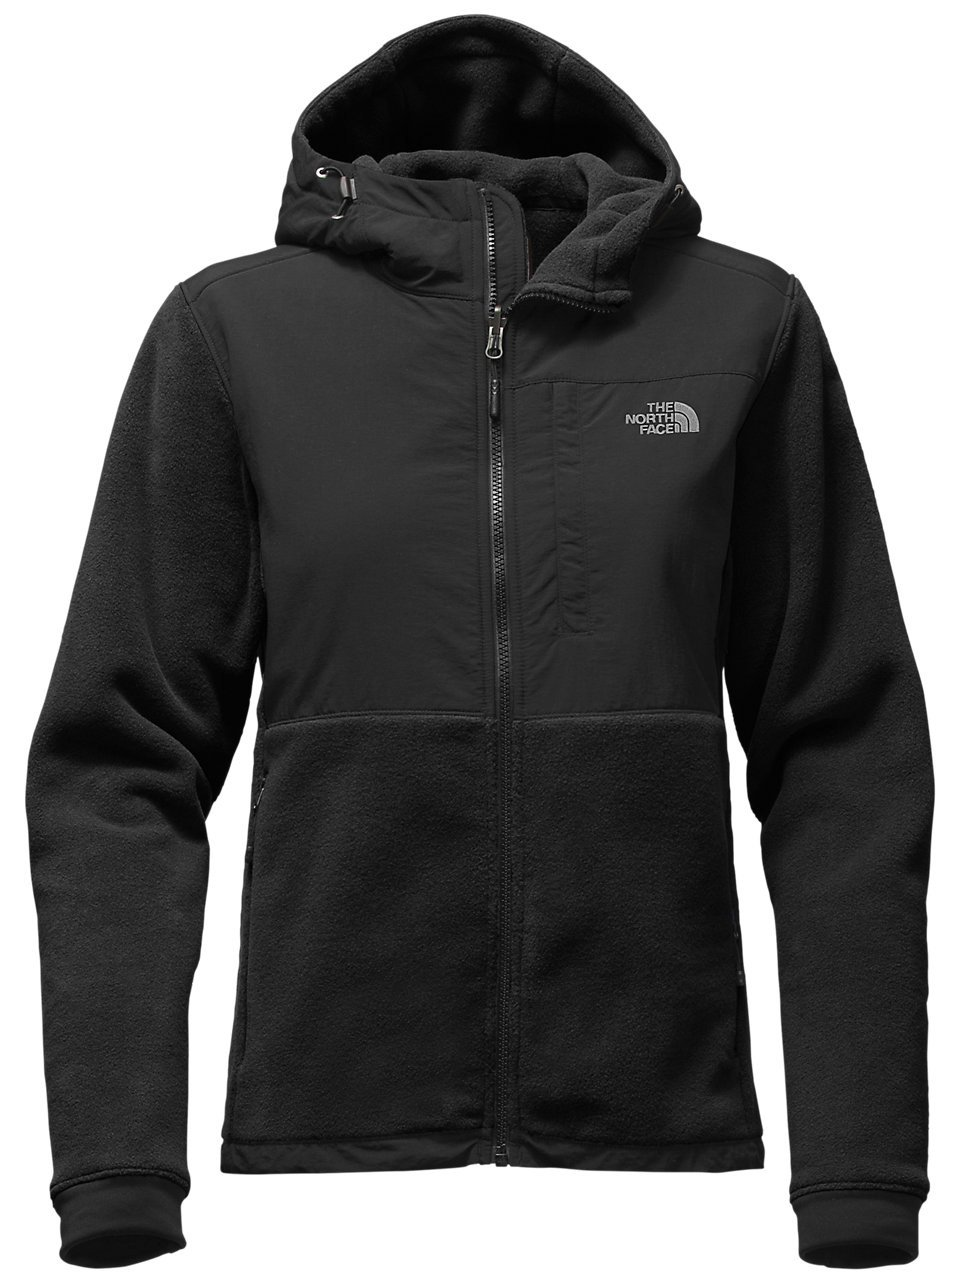 The North Face Denali Hoodie Jacket - Women's TNF Black/TNF Black X-Small